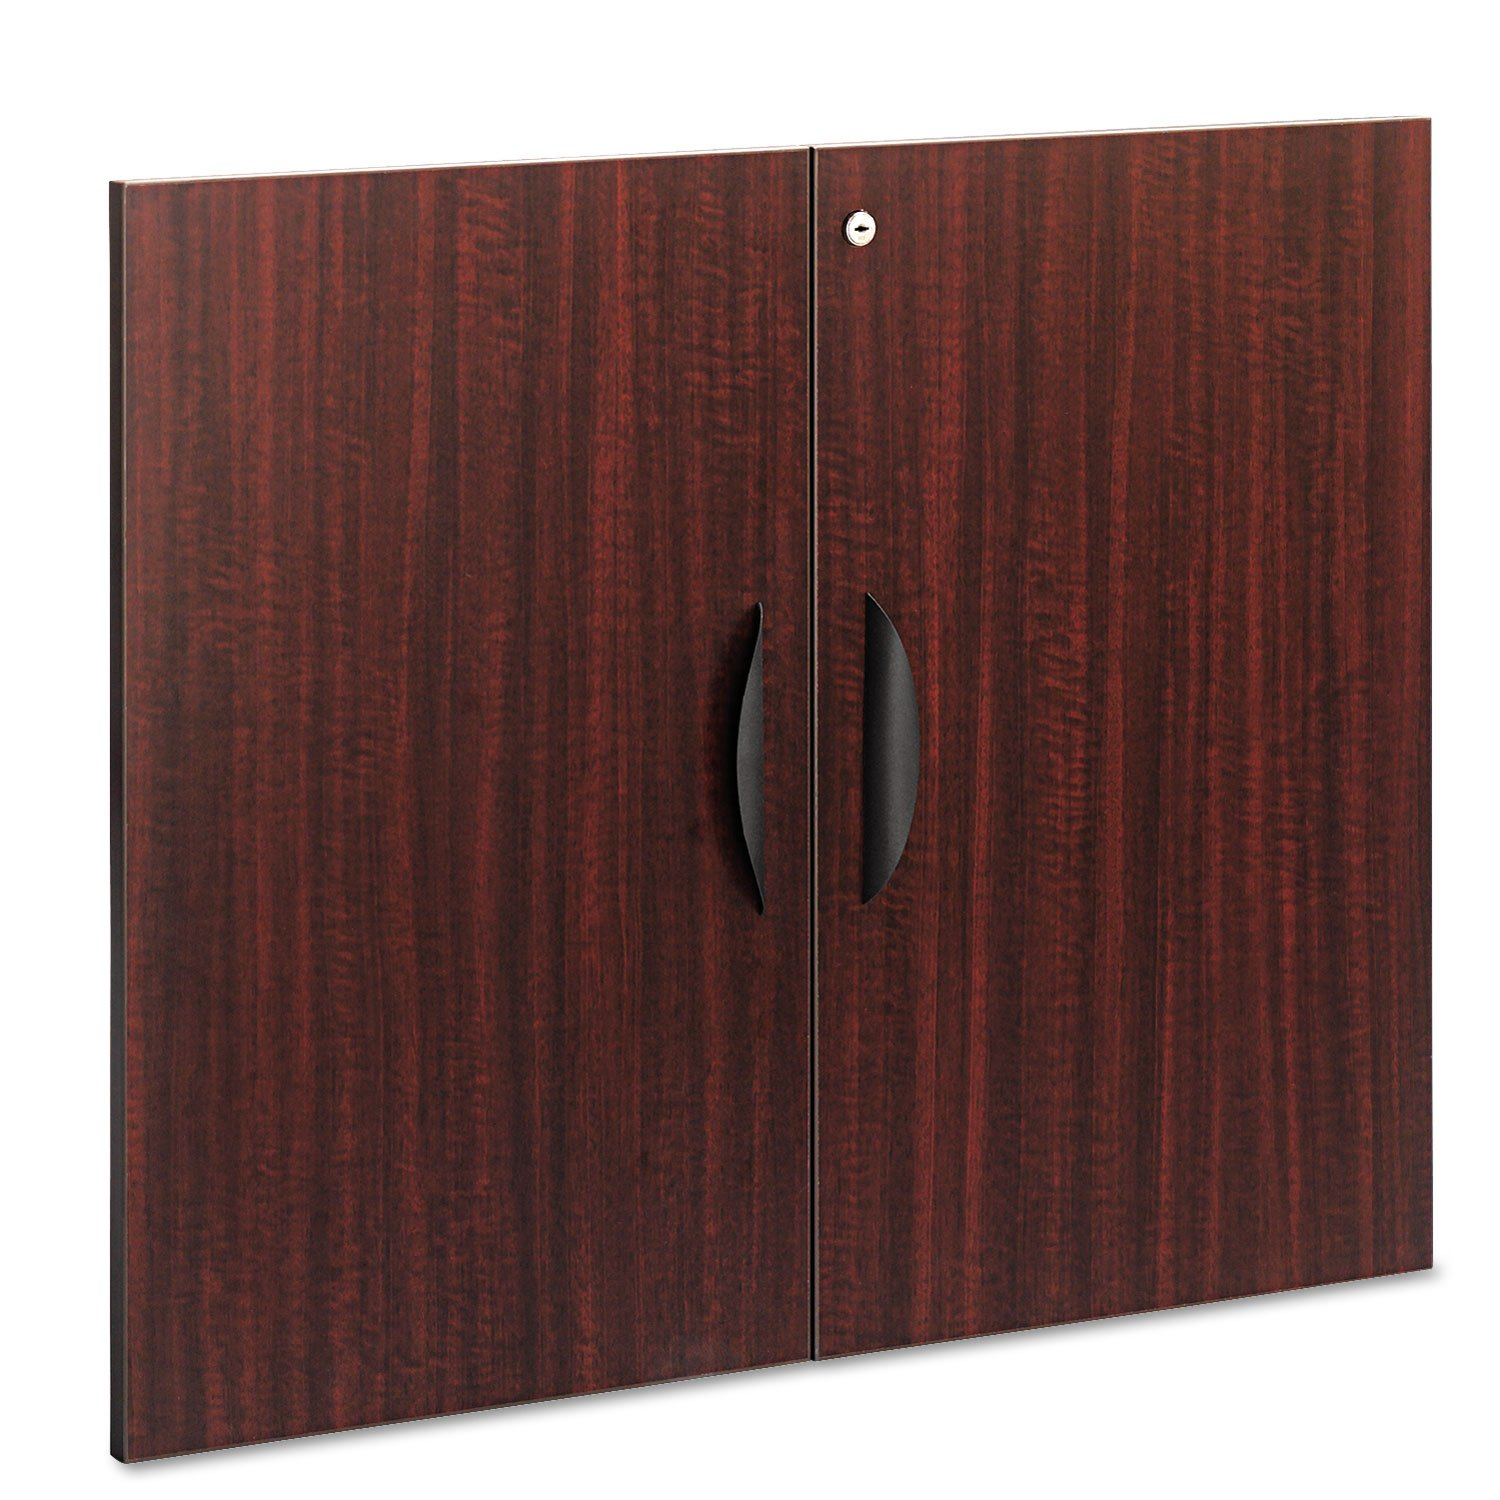 Alera VA632832MY Alera Valencia Series Cabinet Door Kit for All Bookcases, 31 1/4'' Wide, Mahogany